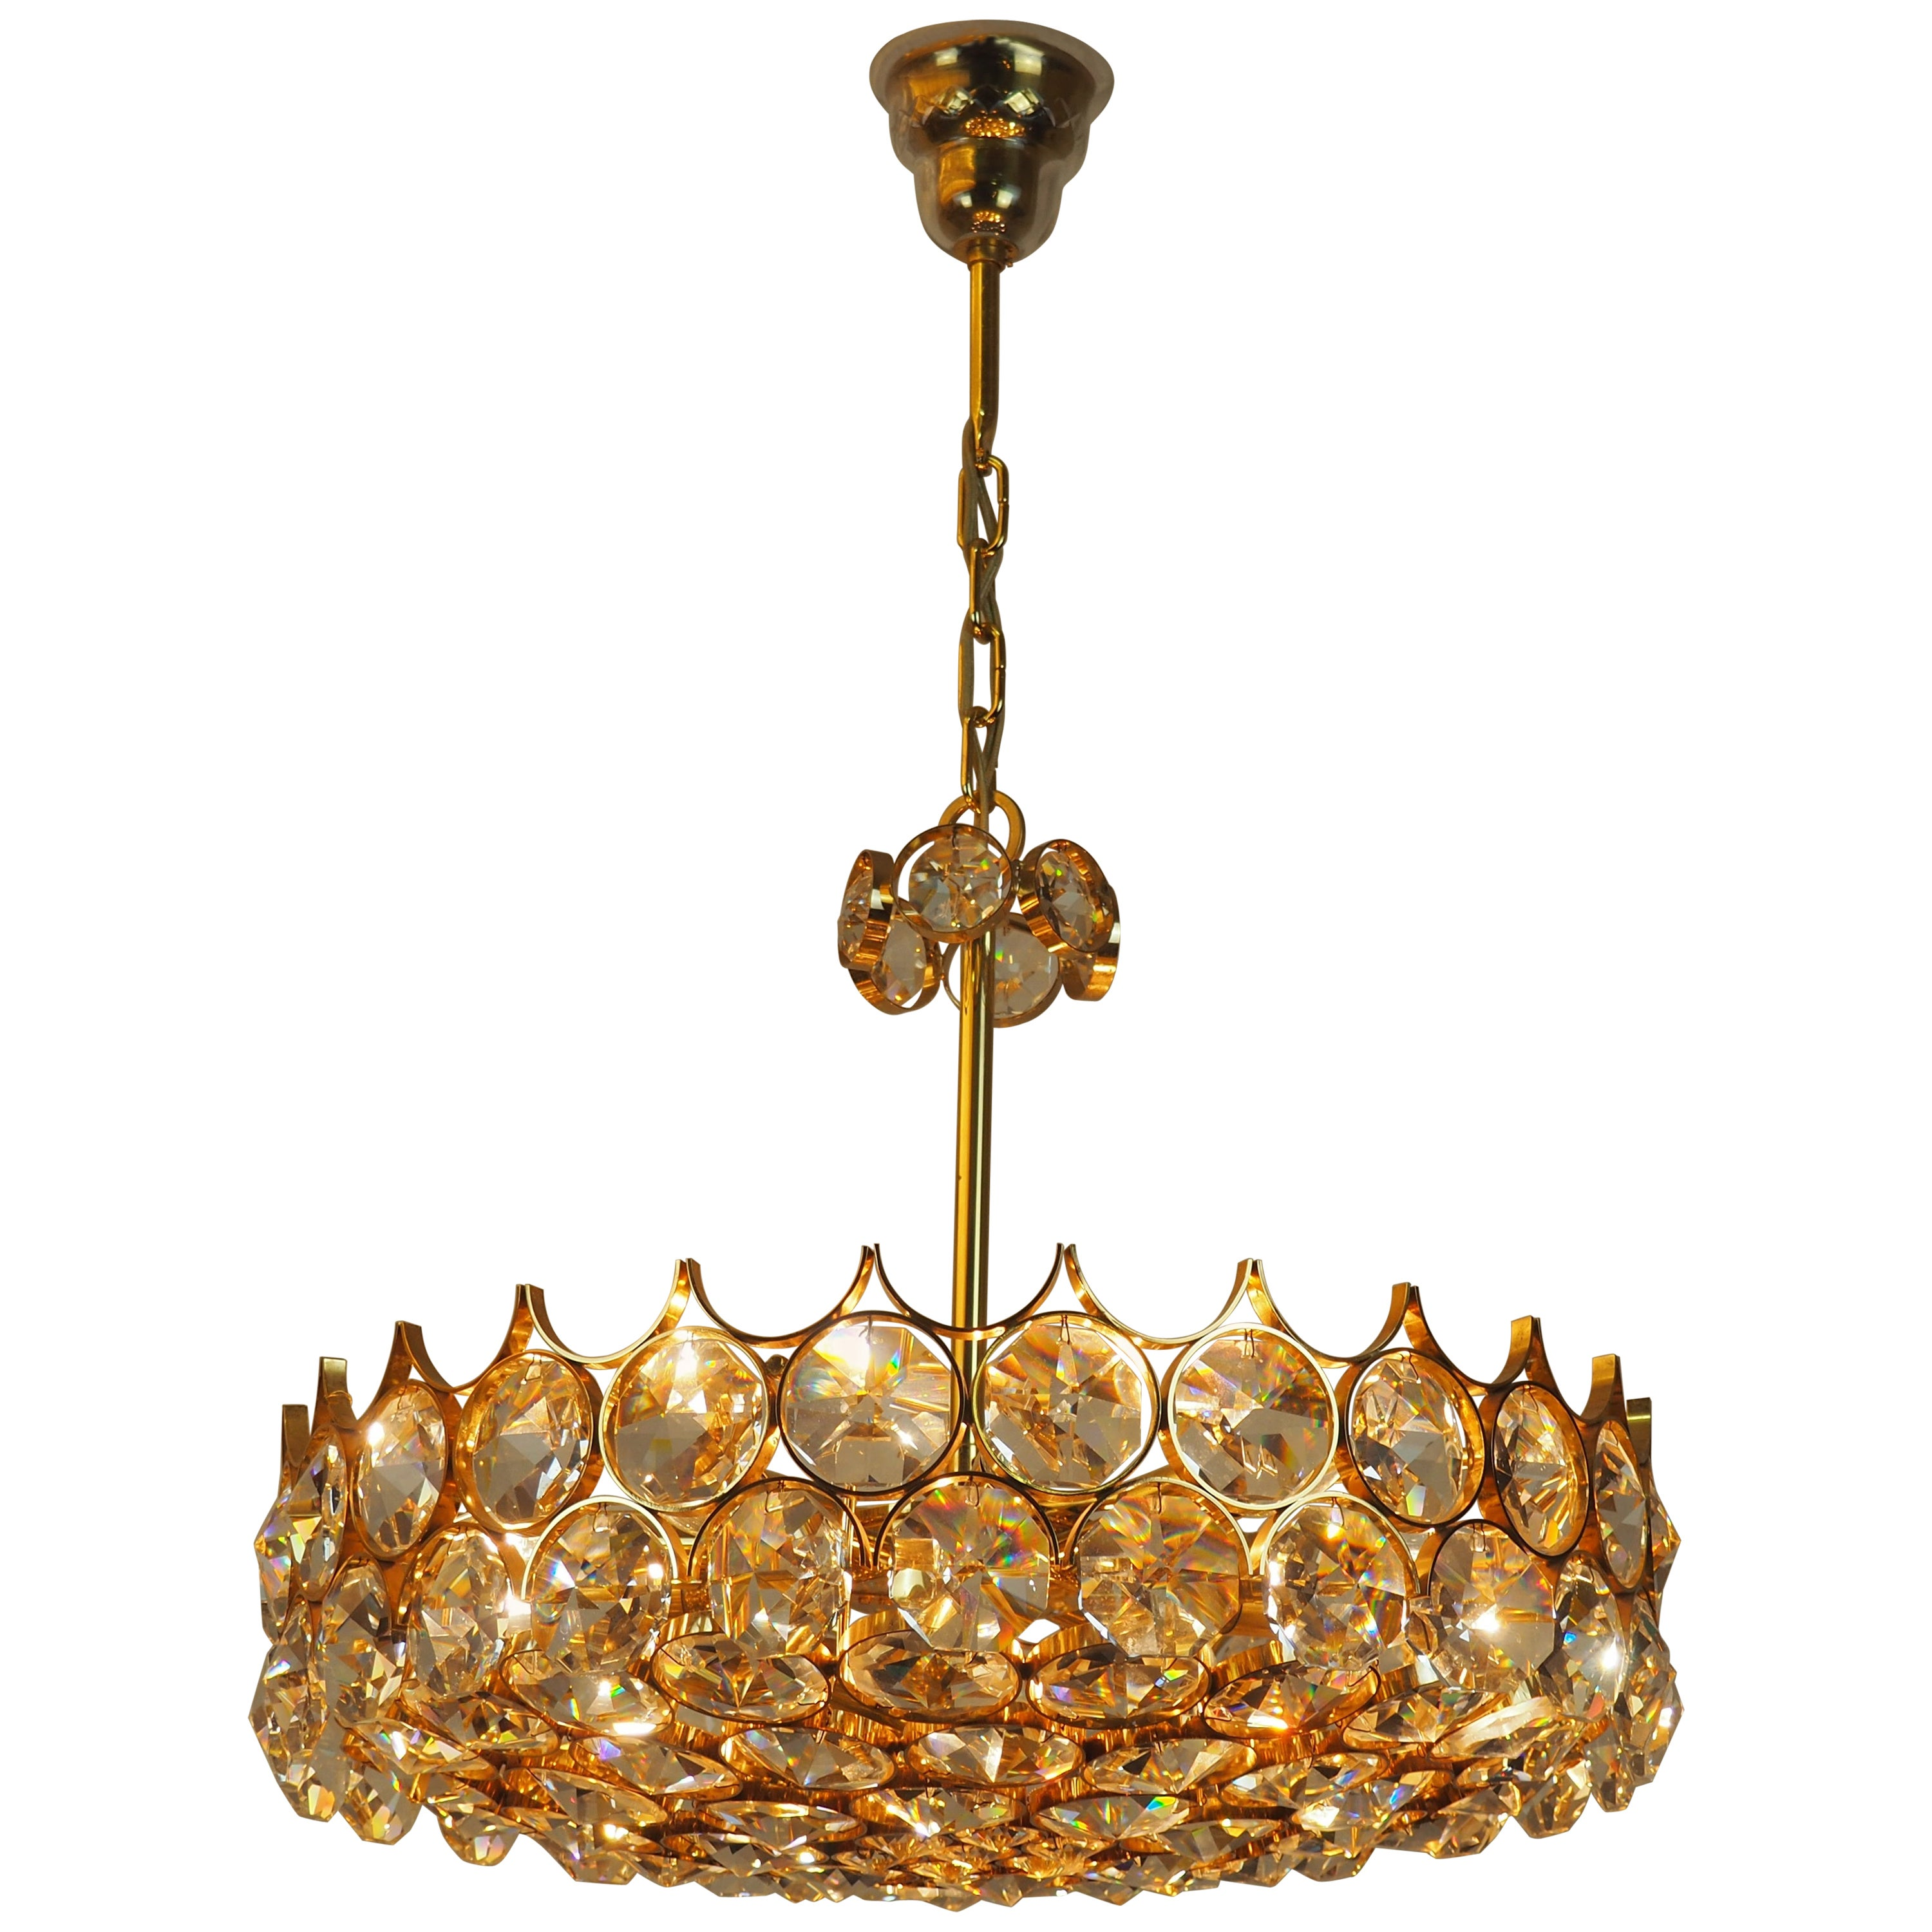 Lovely Large Gilt Brass and Crystal Chandelier by Palwa, circa 1970s